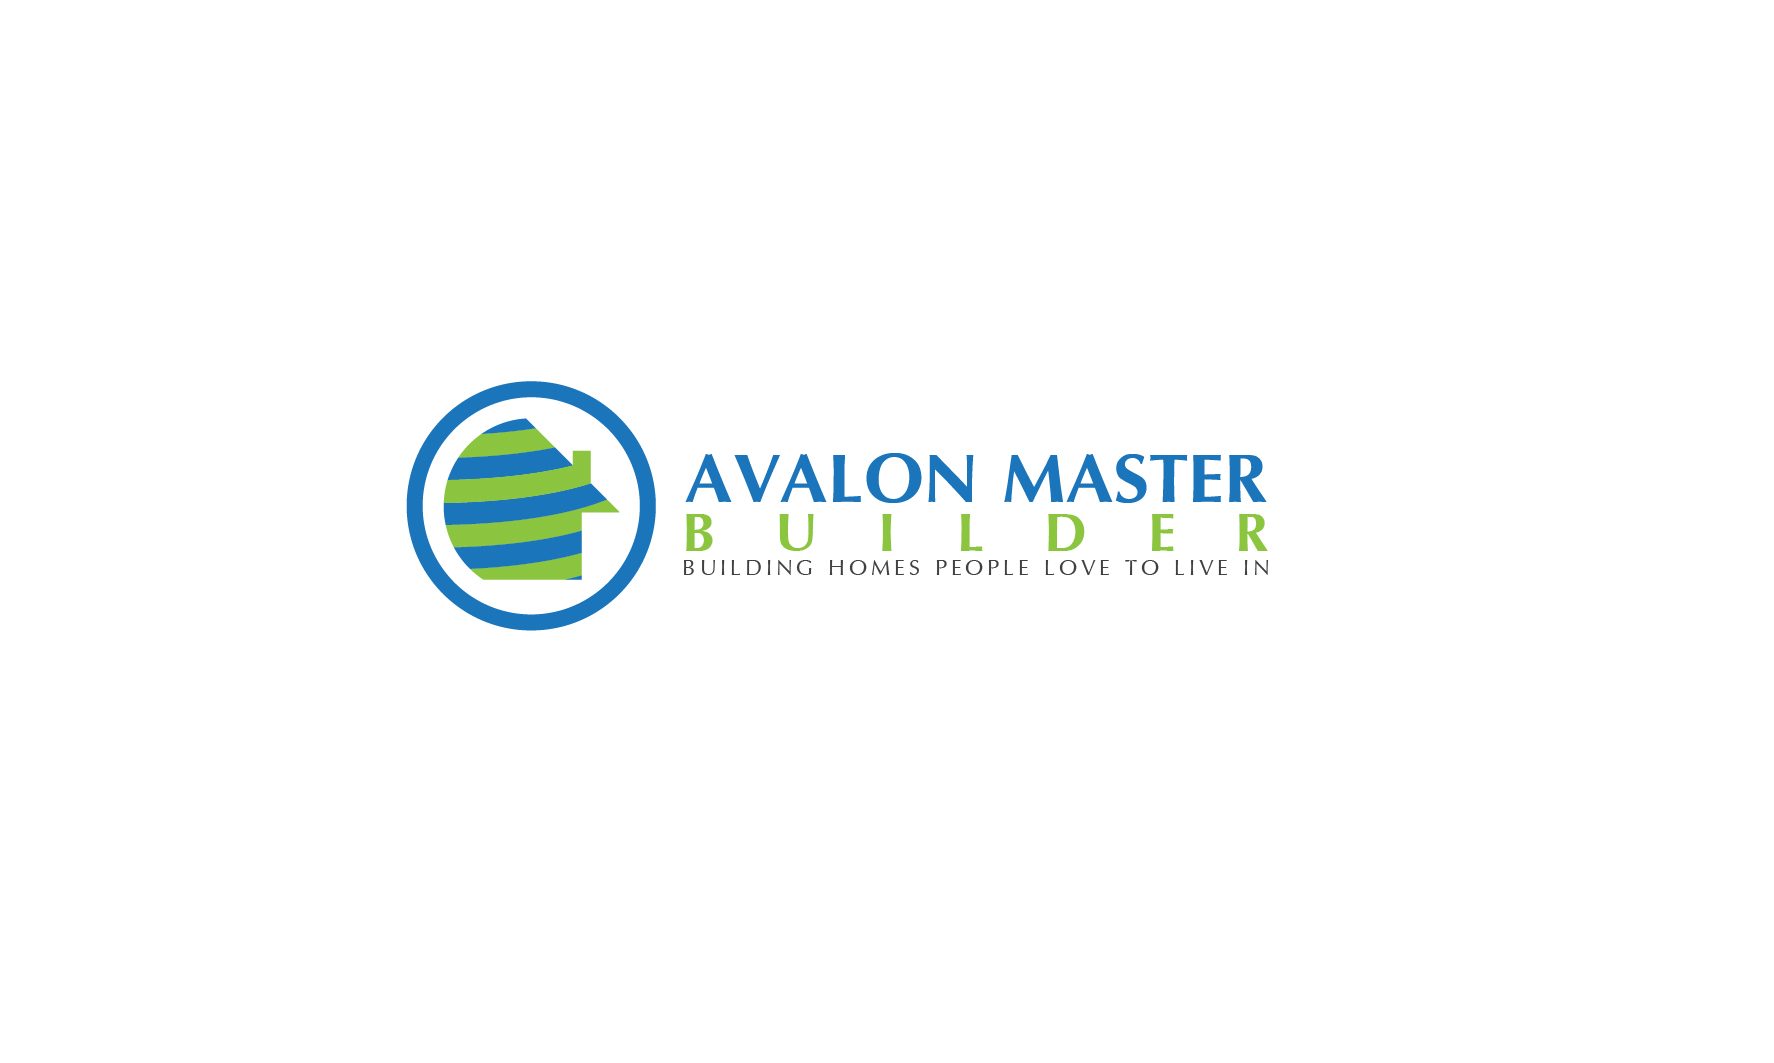 Logo Design by 3draw - Entry No. 49 in the Logo Design Contest Avalon Master Builder Logo Design.